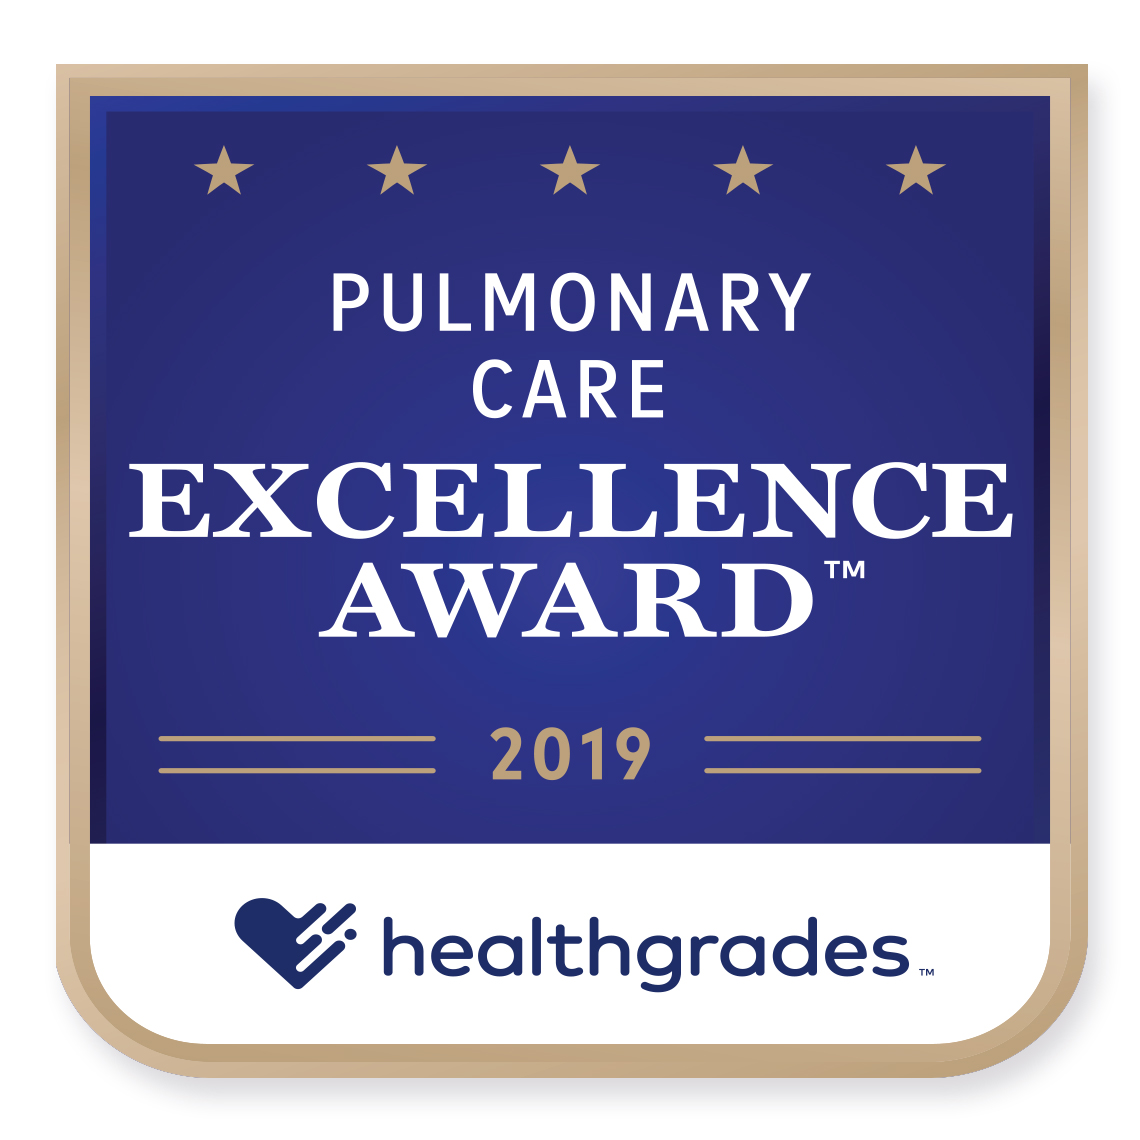 Pulmonary Care Healthgrades Award 2019